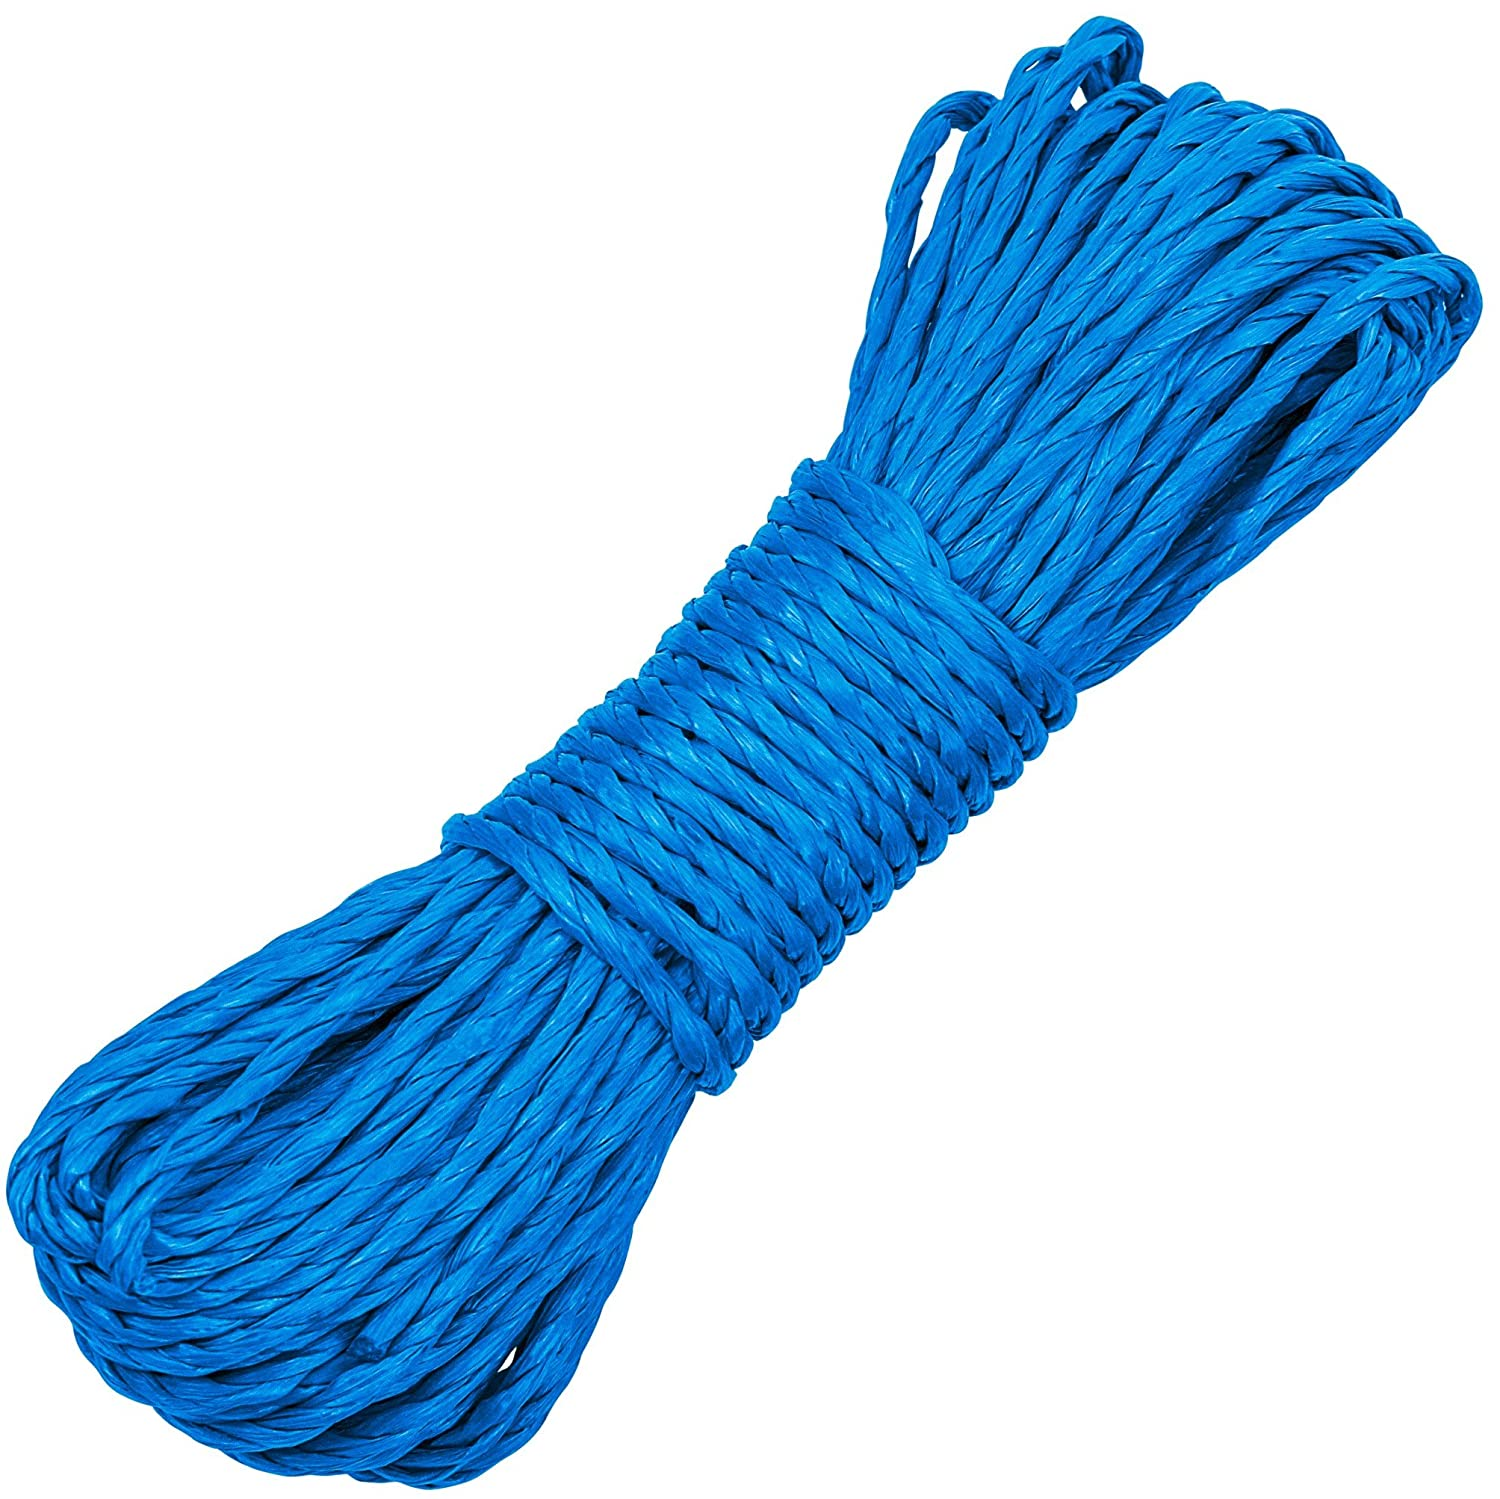 Pack of 4 Utility Rope Random Colors Assigned SteadMax 75 Feet Twisted Propylene Rope 3//16 Inch Poly Twine Synthetic Ropes for Outdoor Long Cord